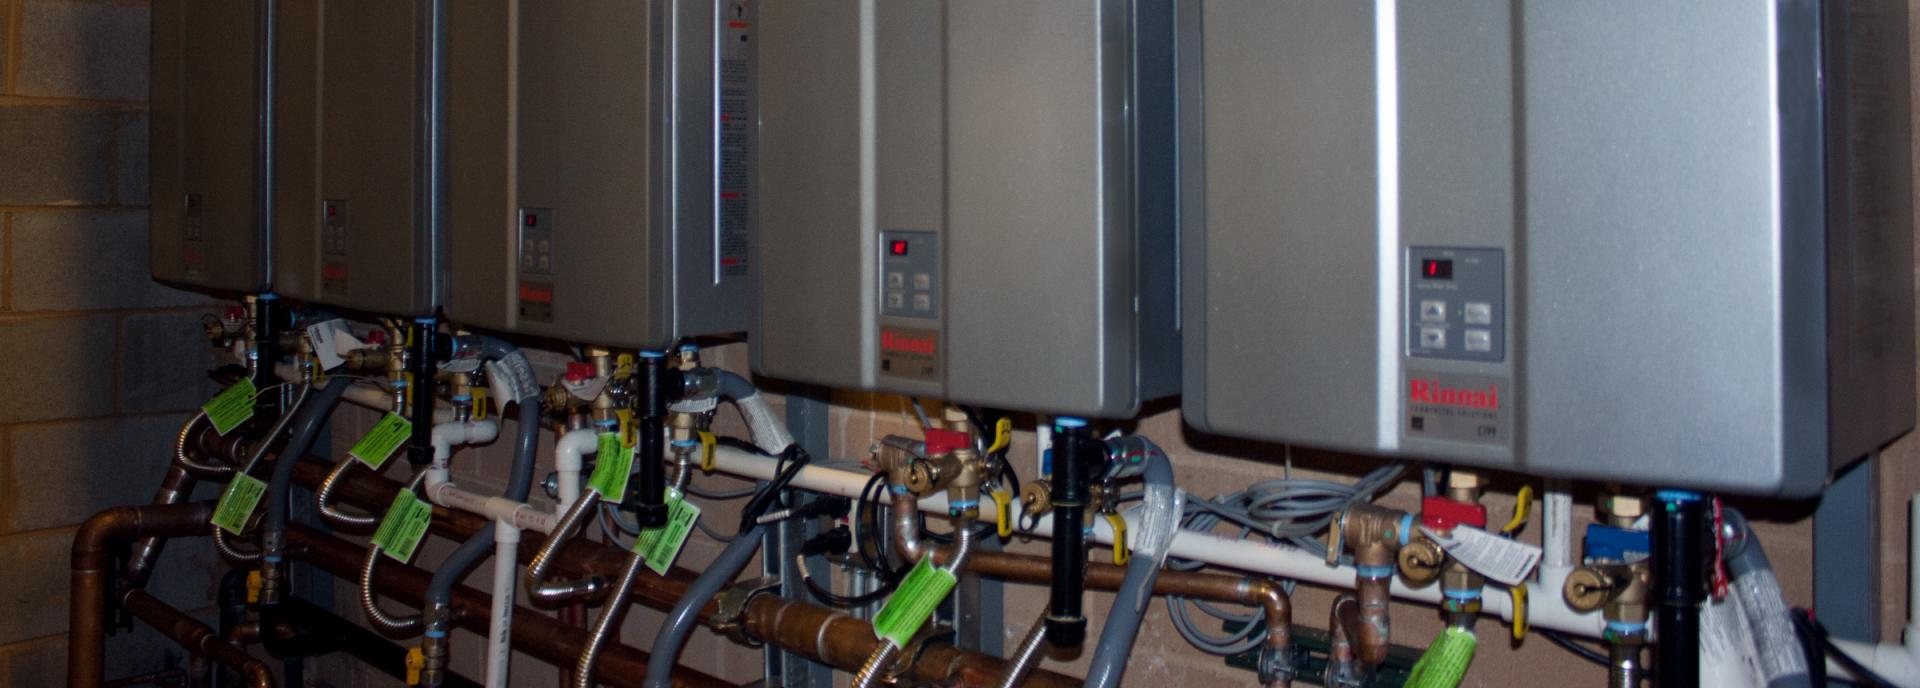 Commercial Water Heating Rinnai